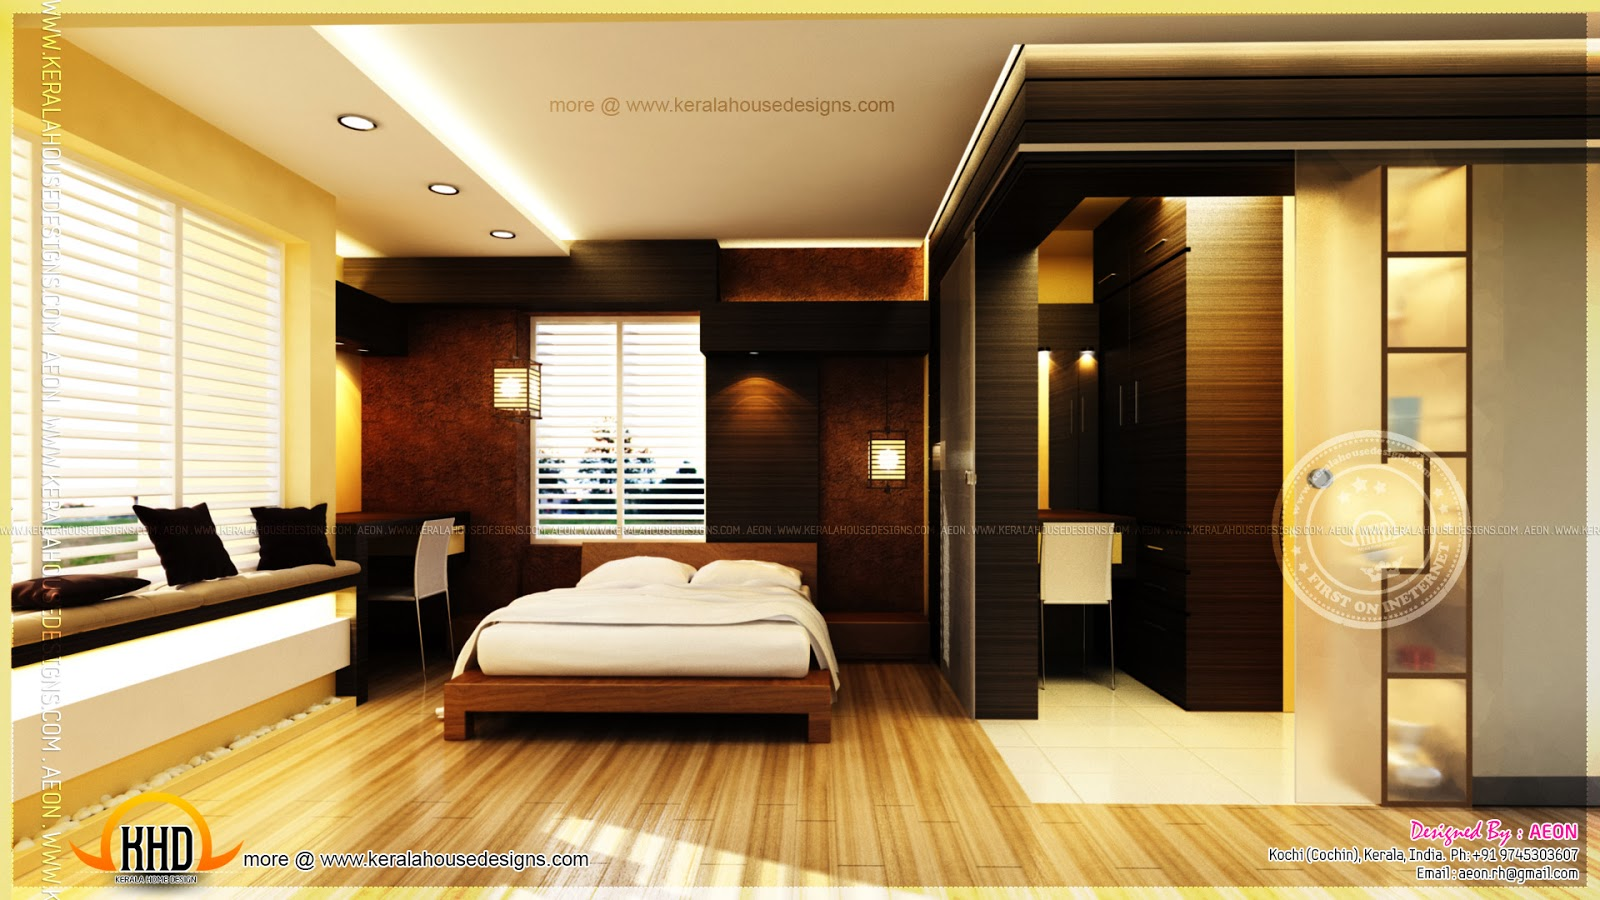 Apartment interior designs by aeon cochin kerala home for Small bedroom with attached bathroom designs